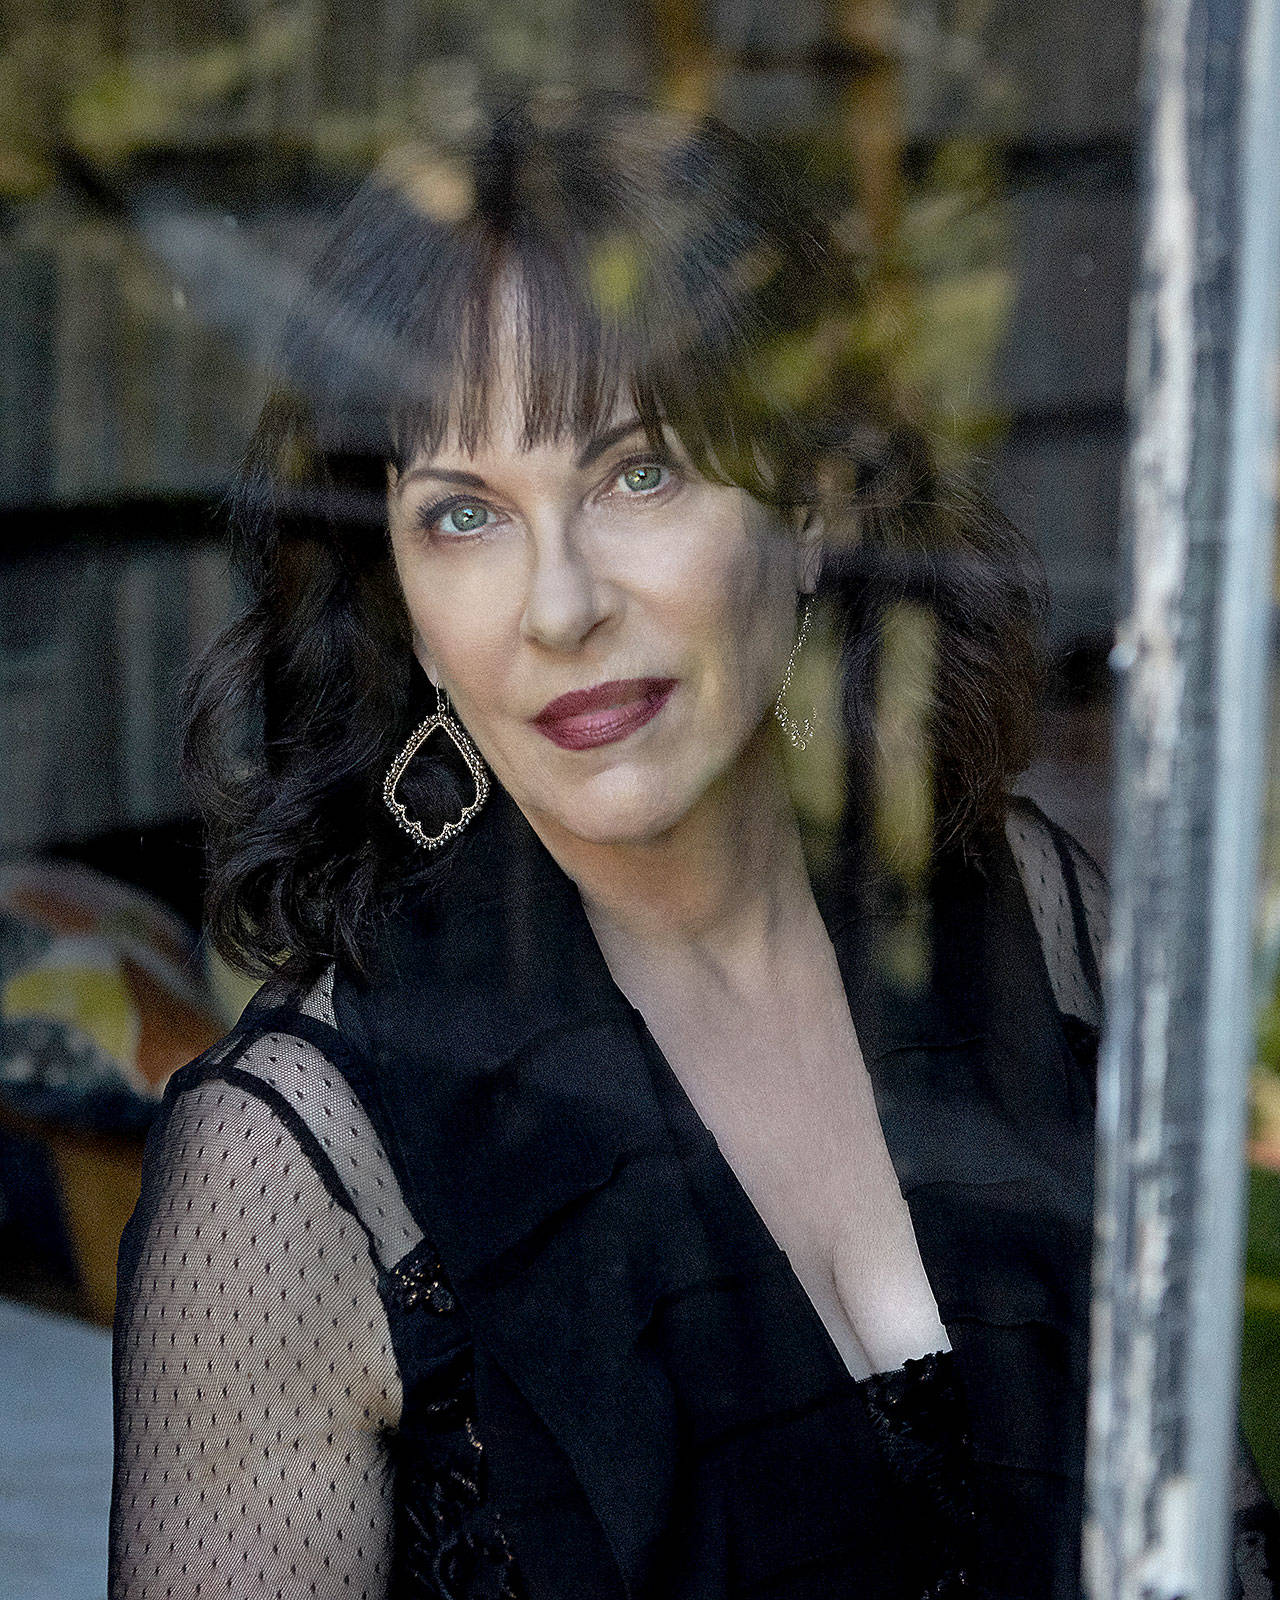 Janiva Magness headlines the Legends of the Blues VII concert Saturday evening in Arlington. (Paul Moore)